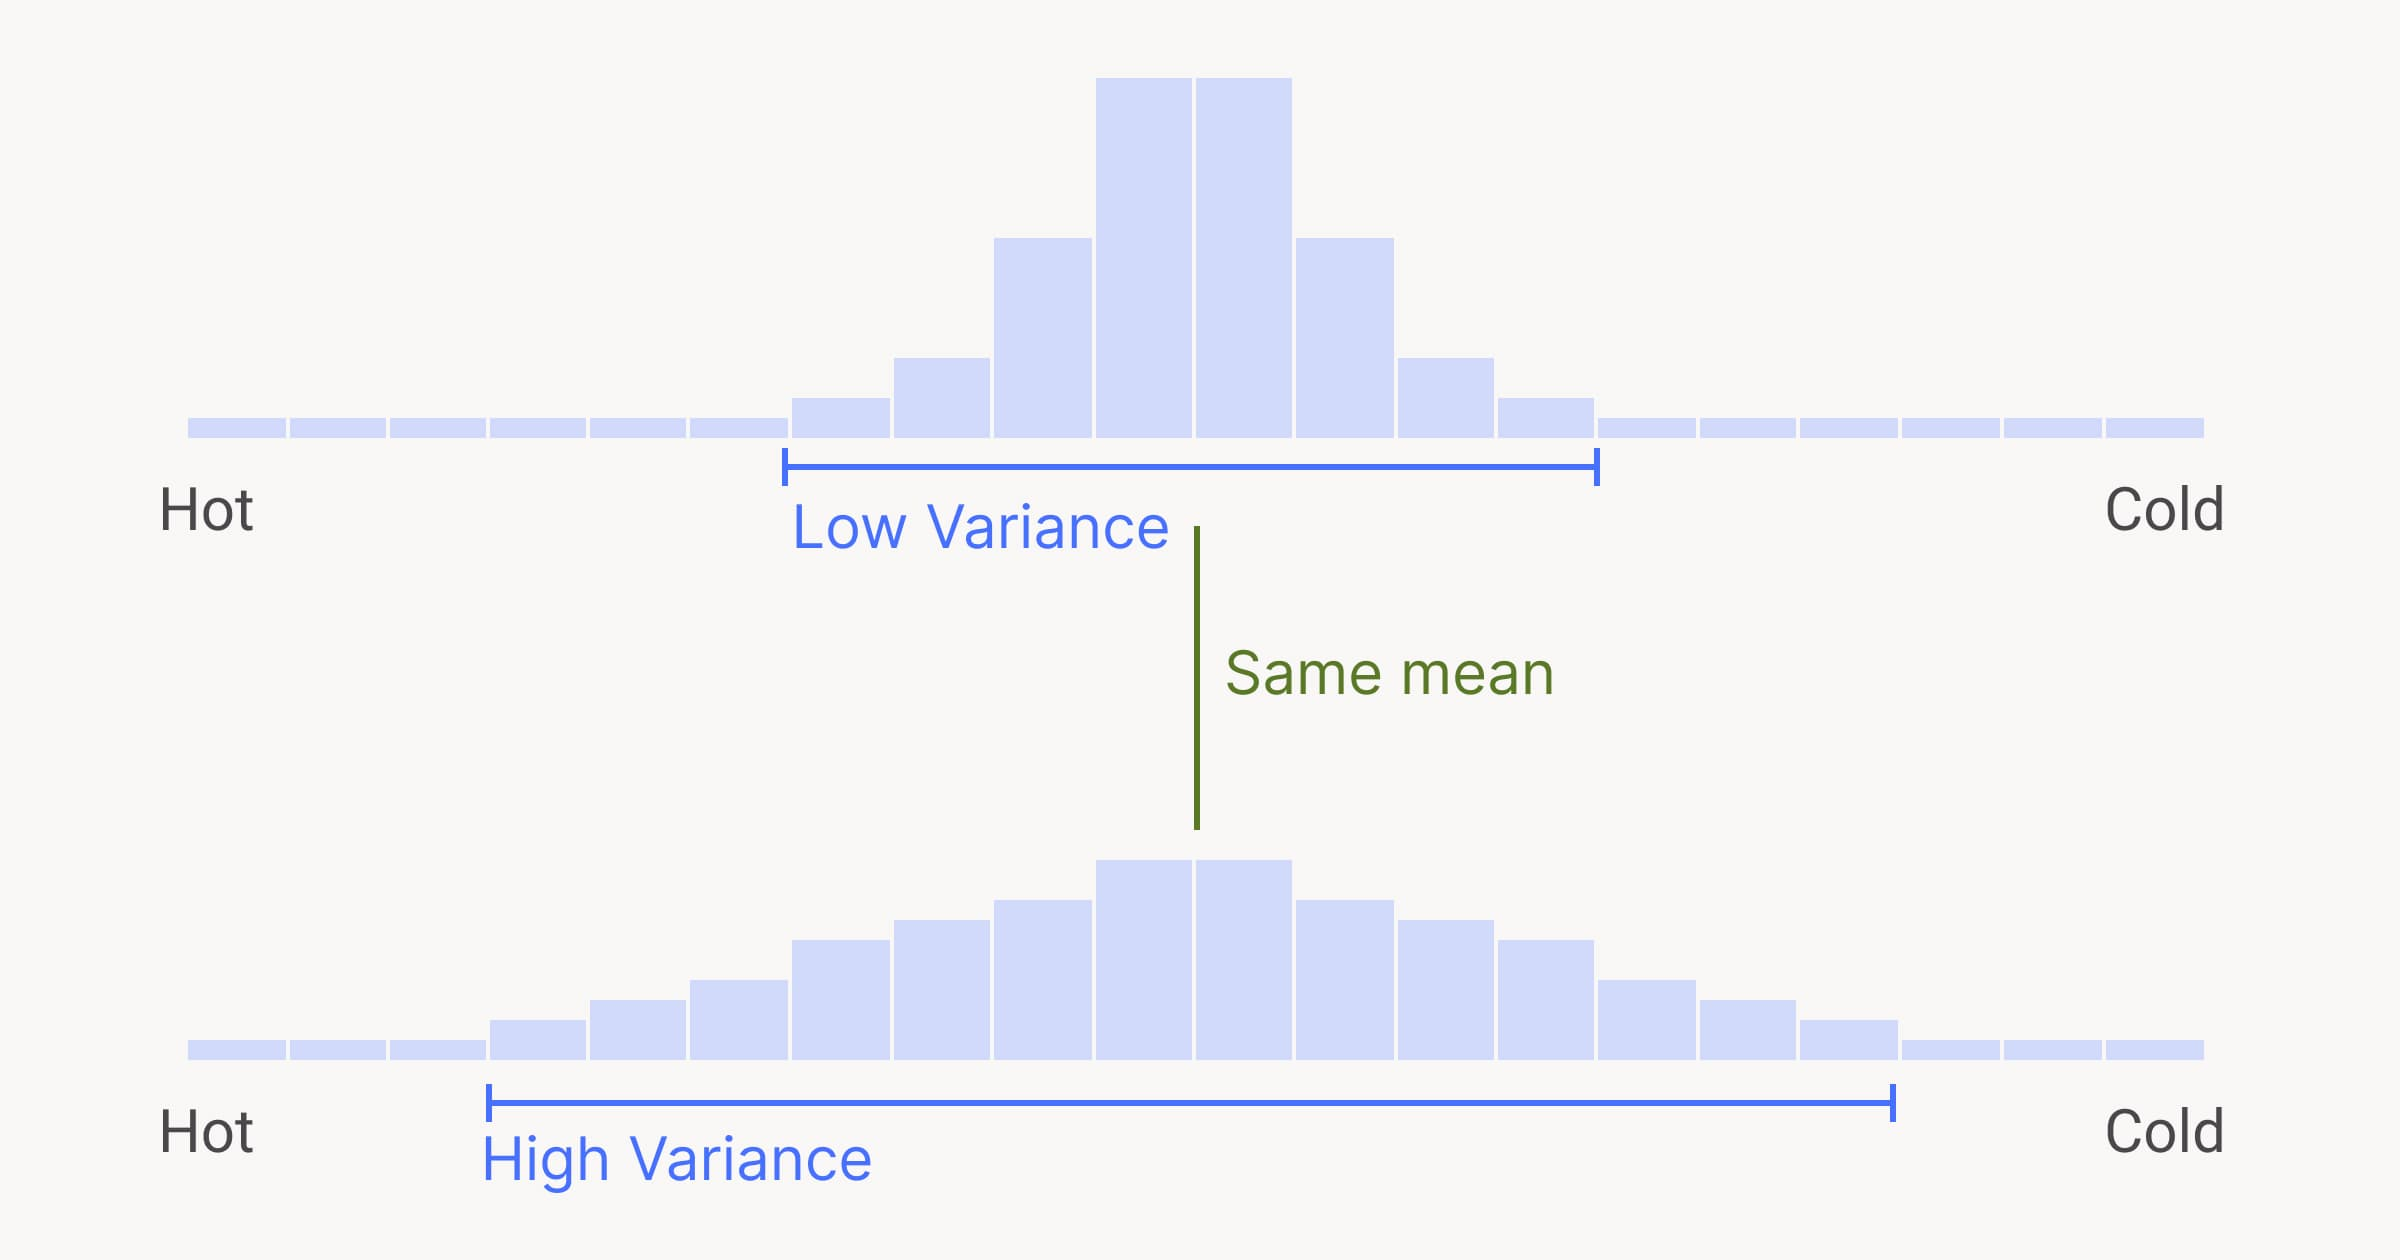 An example of the high variance and low variance with the same mean